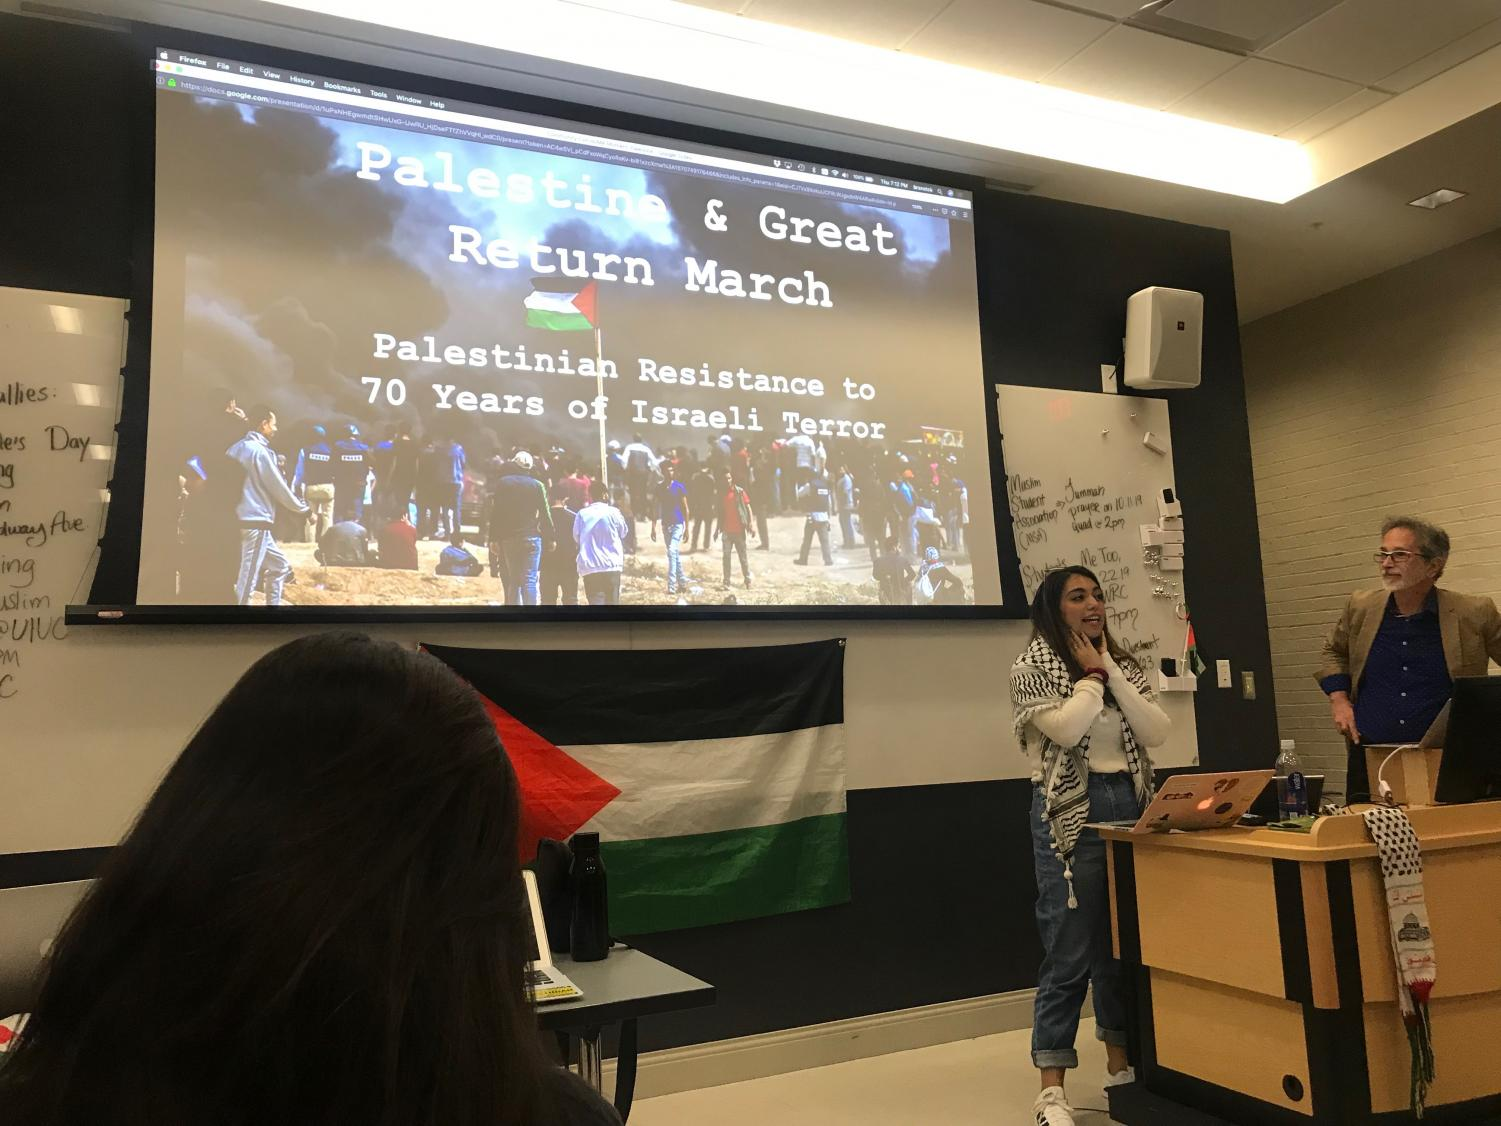 """Students for Justice in Palestine President Ahlam Khatib, left, introduces presenter and religion professor in LAS Bruce Rosenstock during SJP's """"Palestine 101"""" meeting on Oct. 10. Rosenstock pulled up the """"Palestine & Great Return March Palestinian Resistance to 70 Years of Israeli Terror"""" presentation that prompted an apology from Chancellor Robert Jones after concerns of anti-Semitic content during a Sept. 25 Housing staff meeting."""